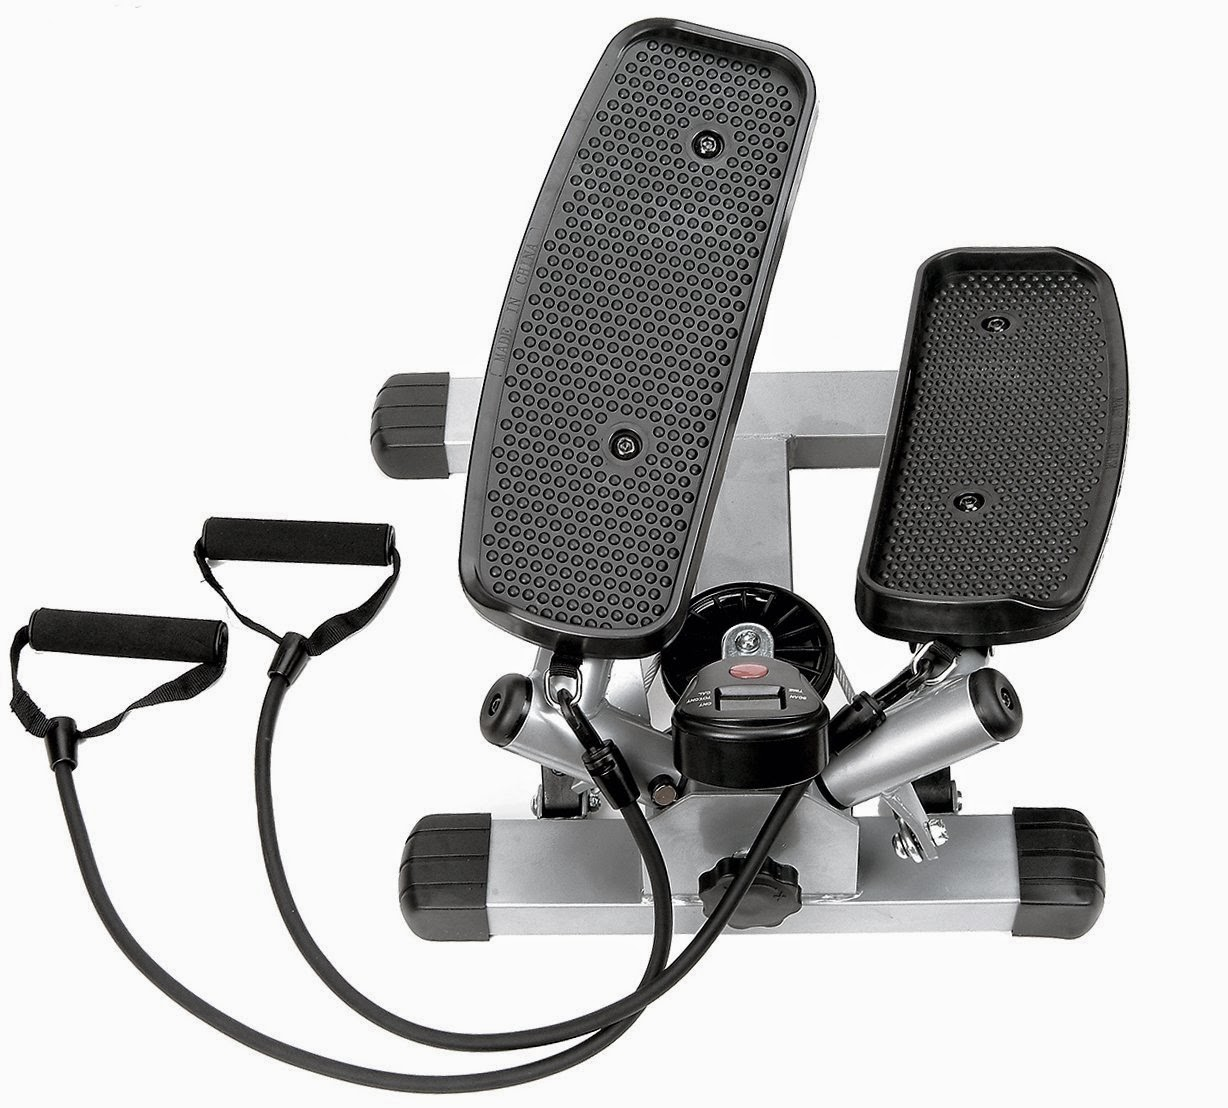 Sunny Health & Fitness Twister Stepper with Resistance Bands, picture, review features & specifications, plus compare with Sunny Twister Stepper with Handle Bar